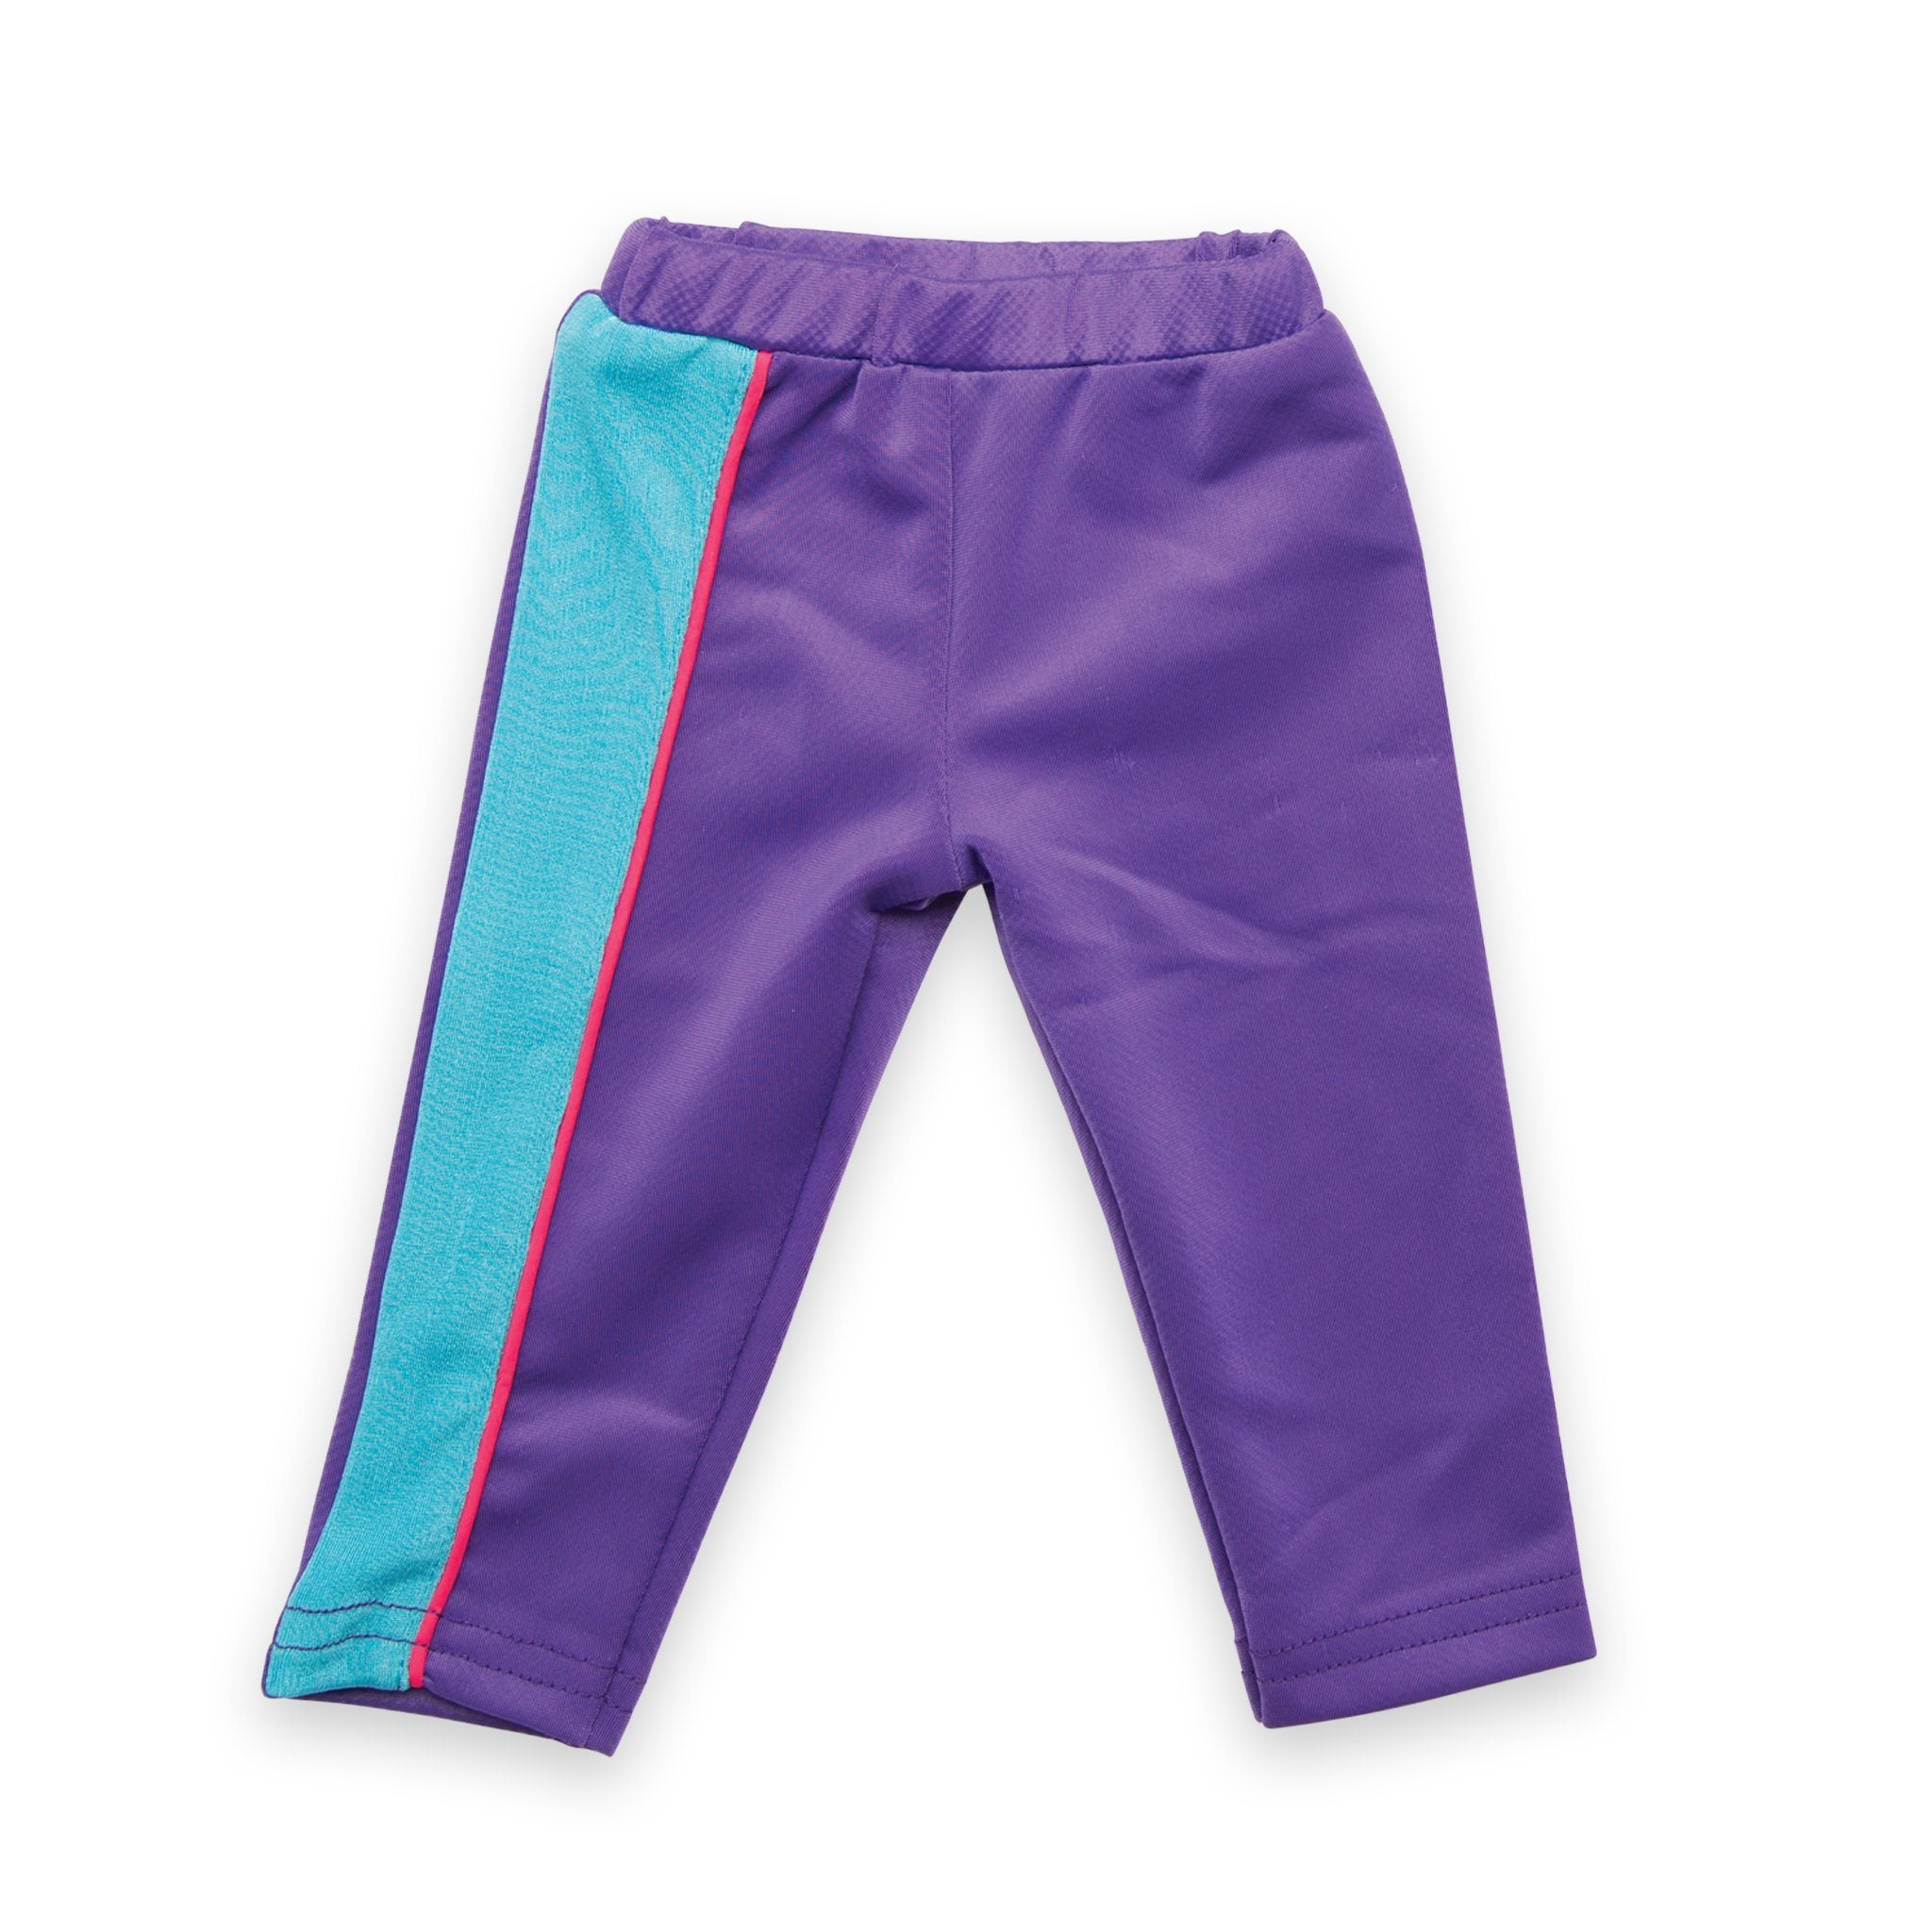 Personal Best purple and blue track pants fits all 18 inch dolls.